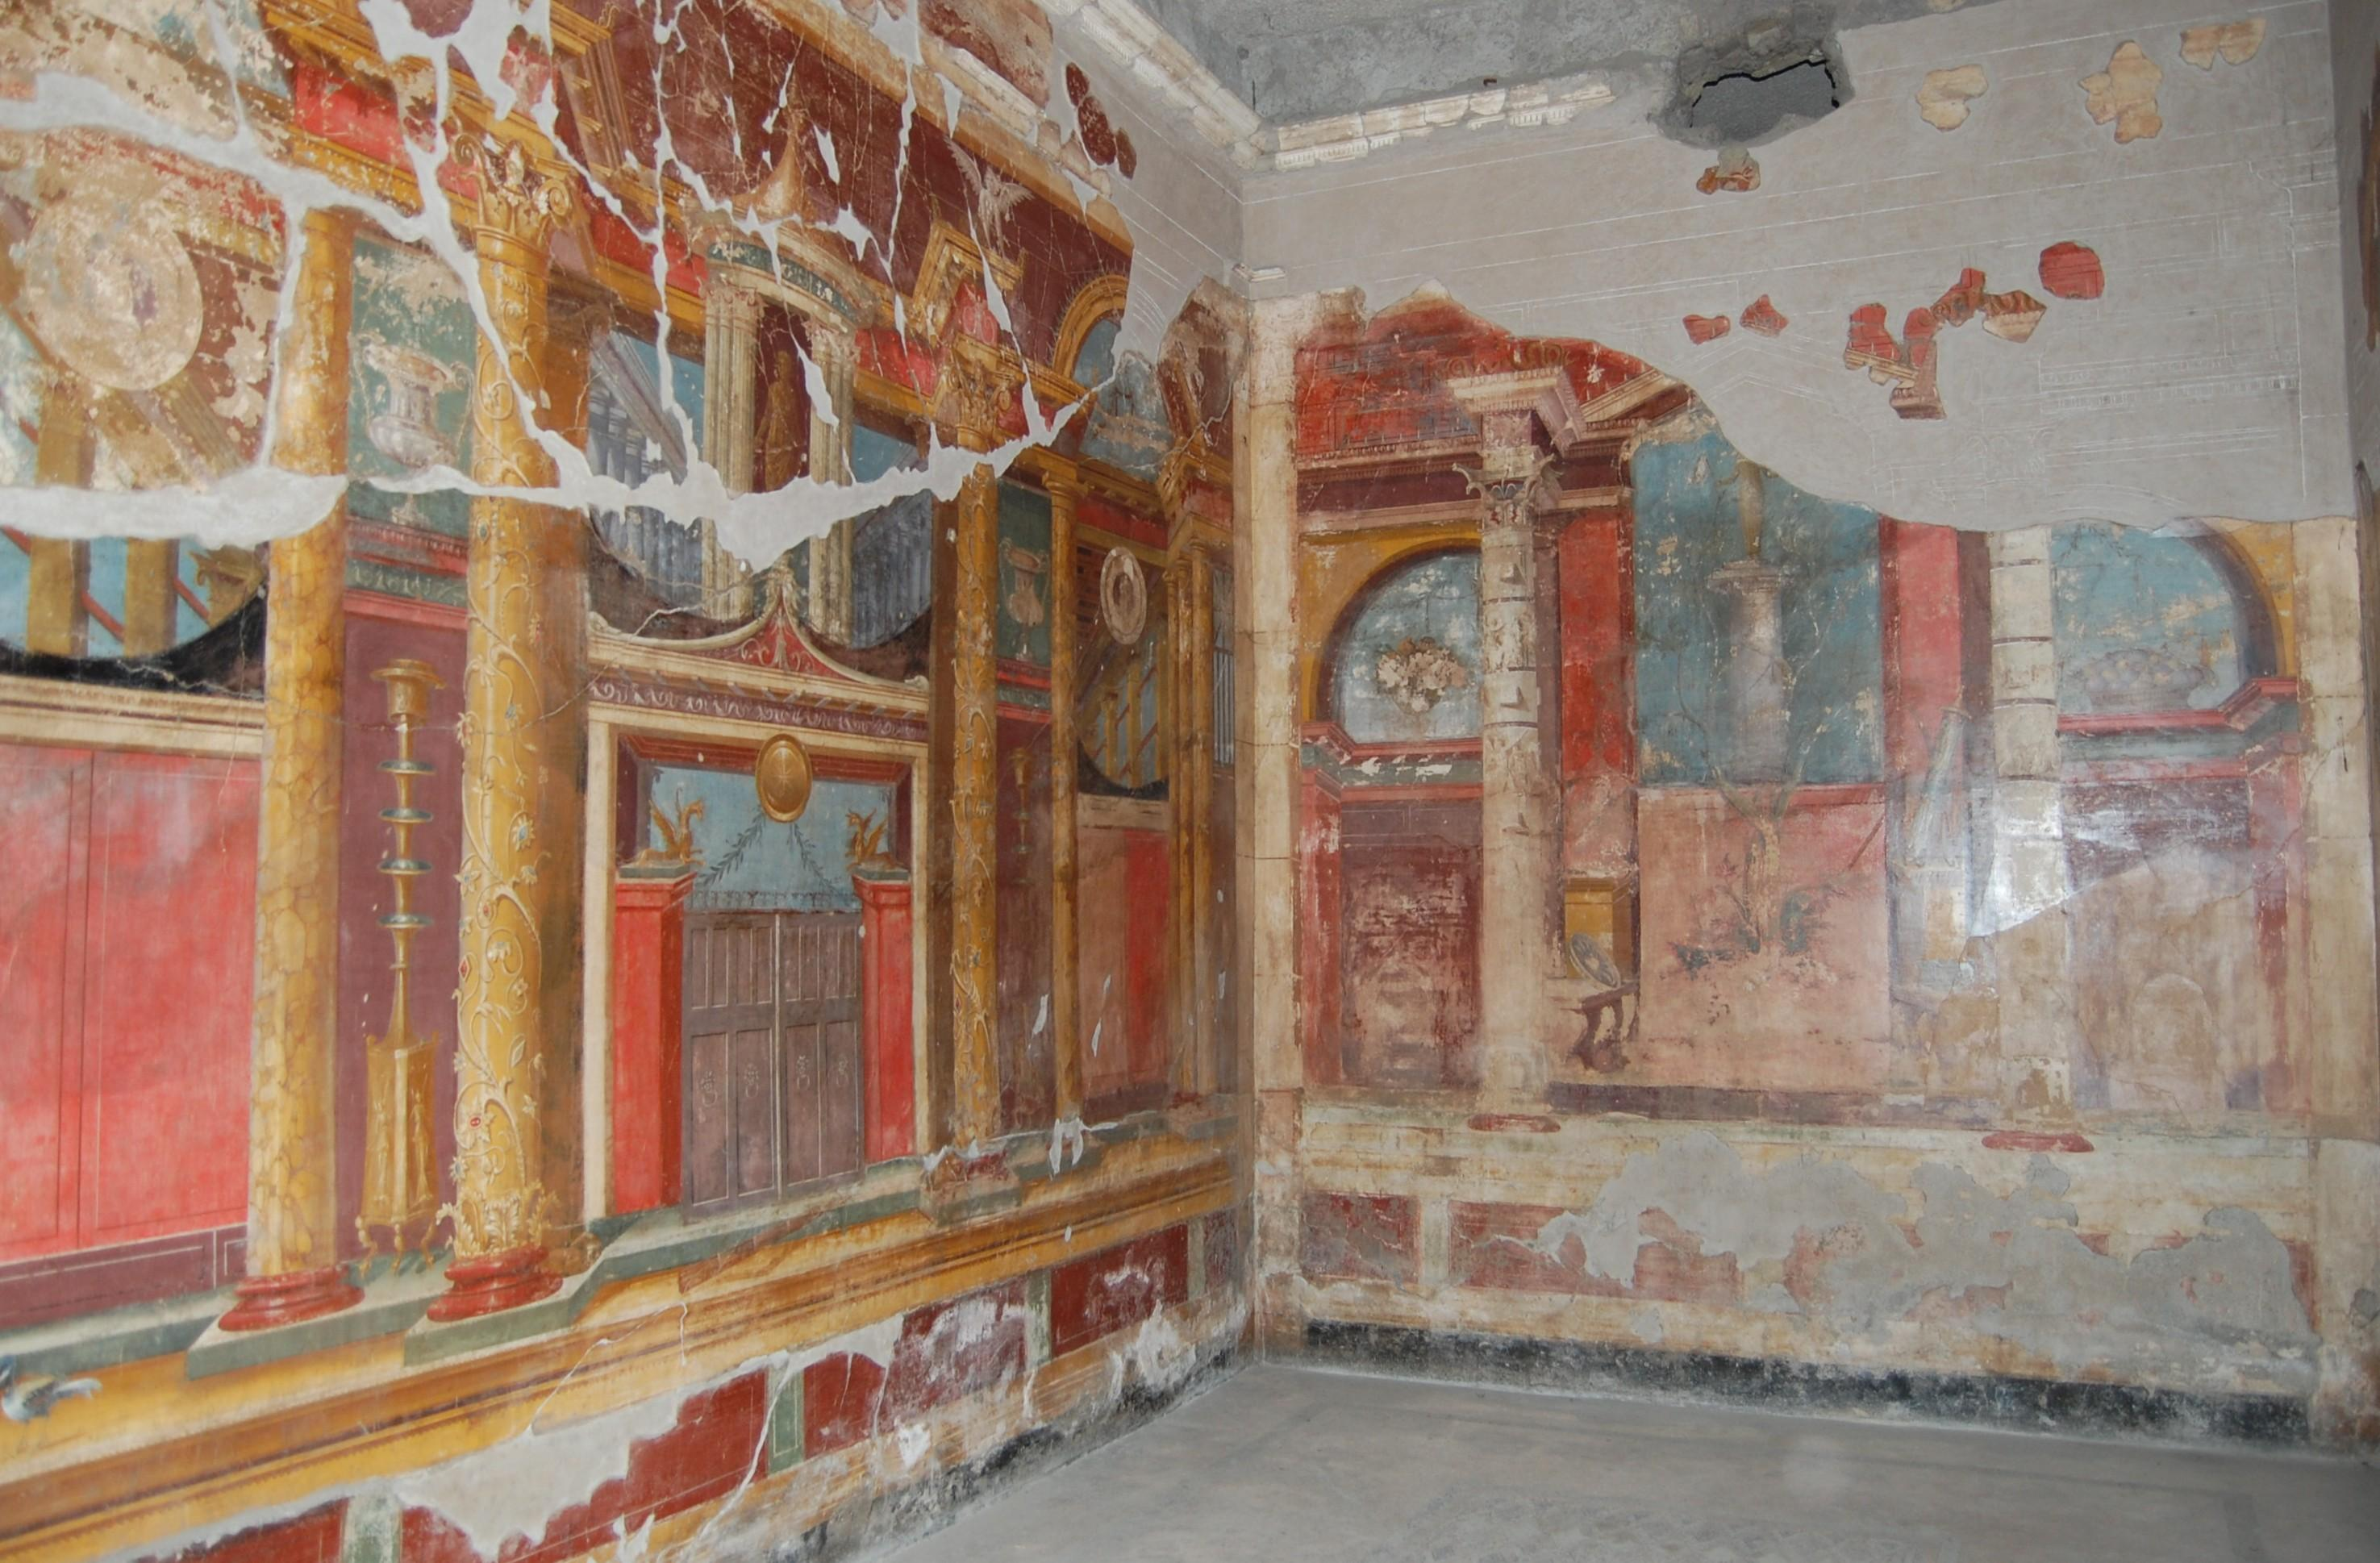 Villa oplontis wall paintings beta A wall painting